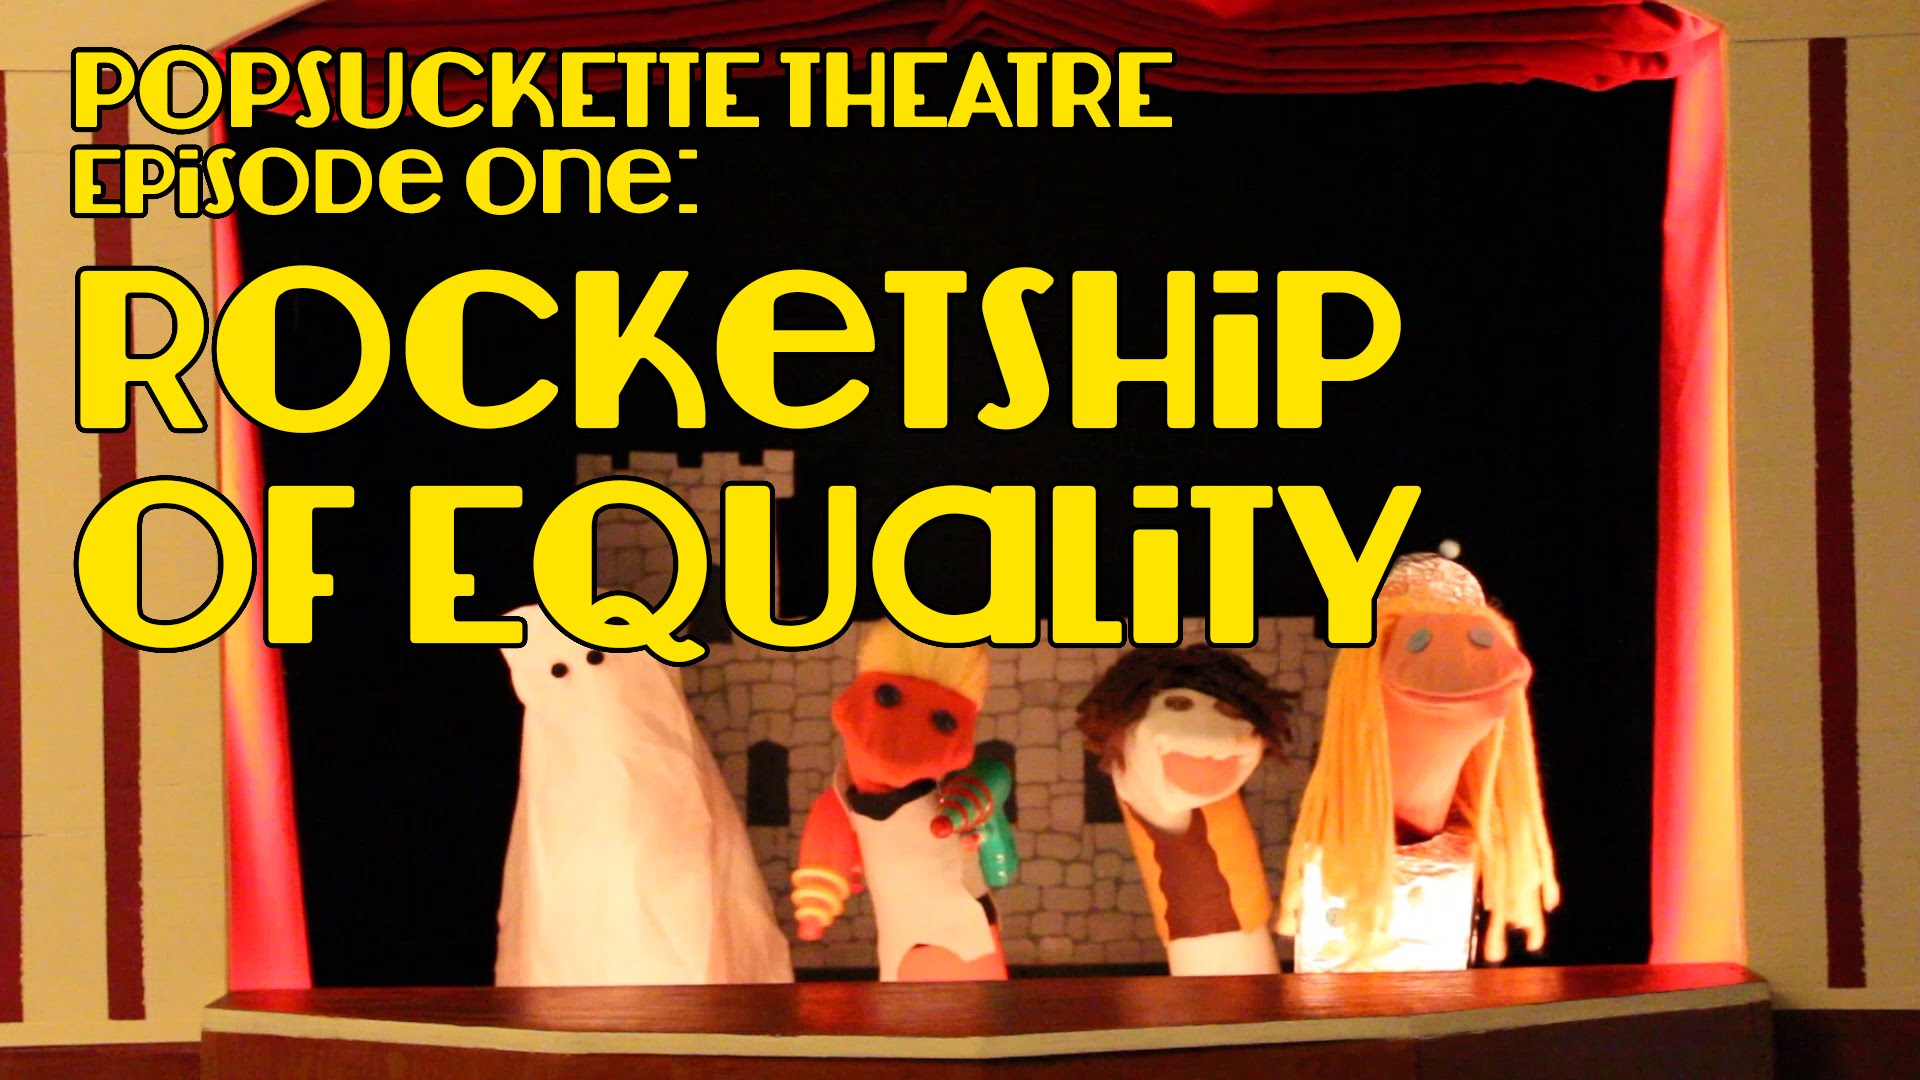 Episode One: Rocketship of Equality | Popsuckette Theatre | Season One